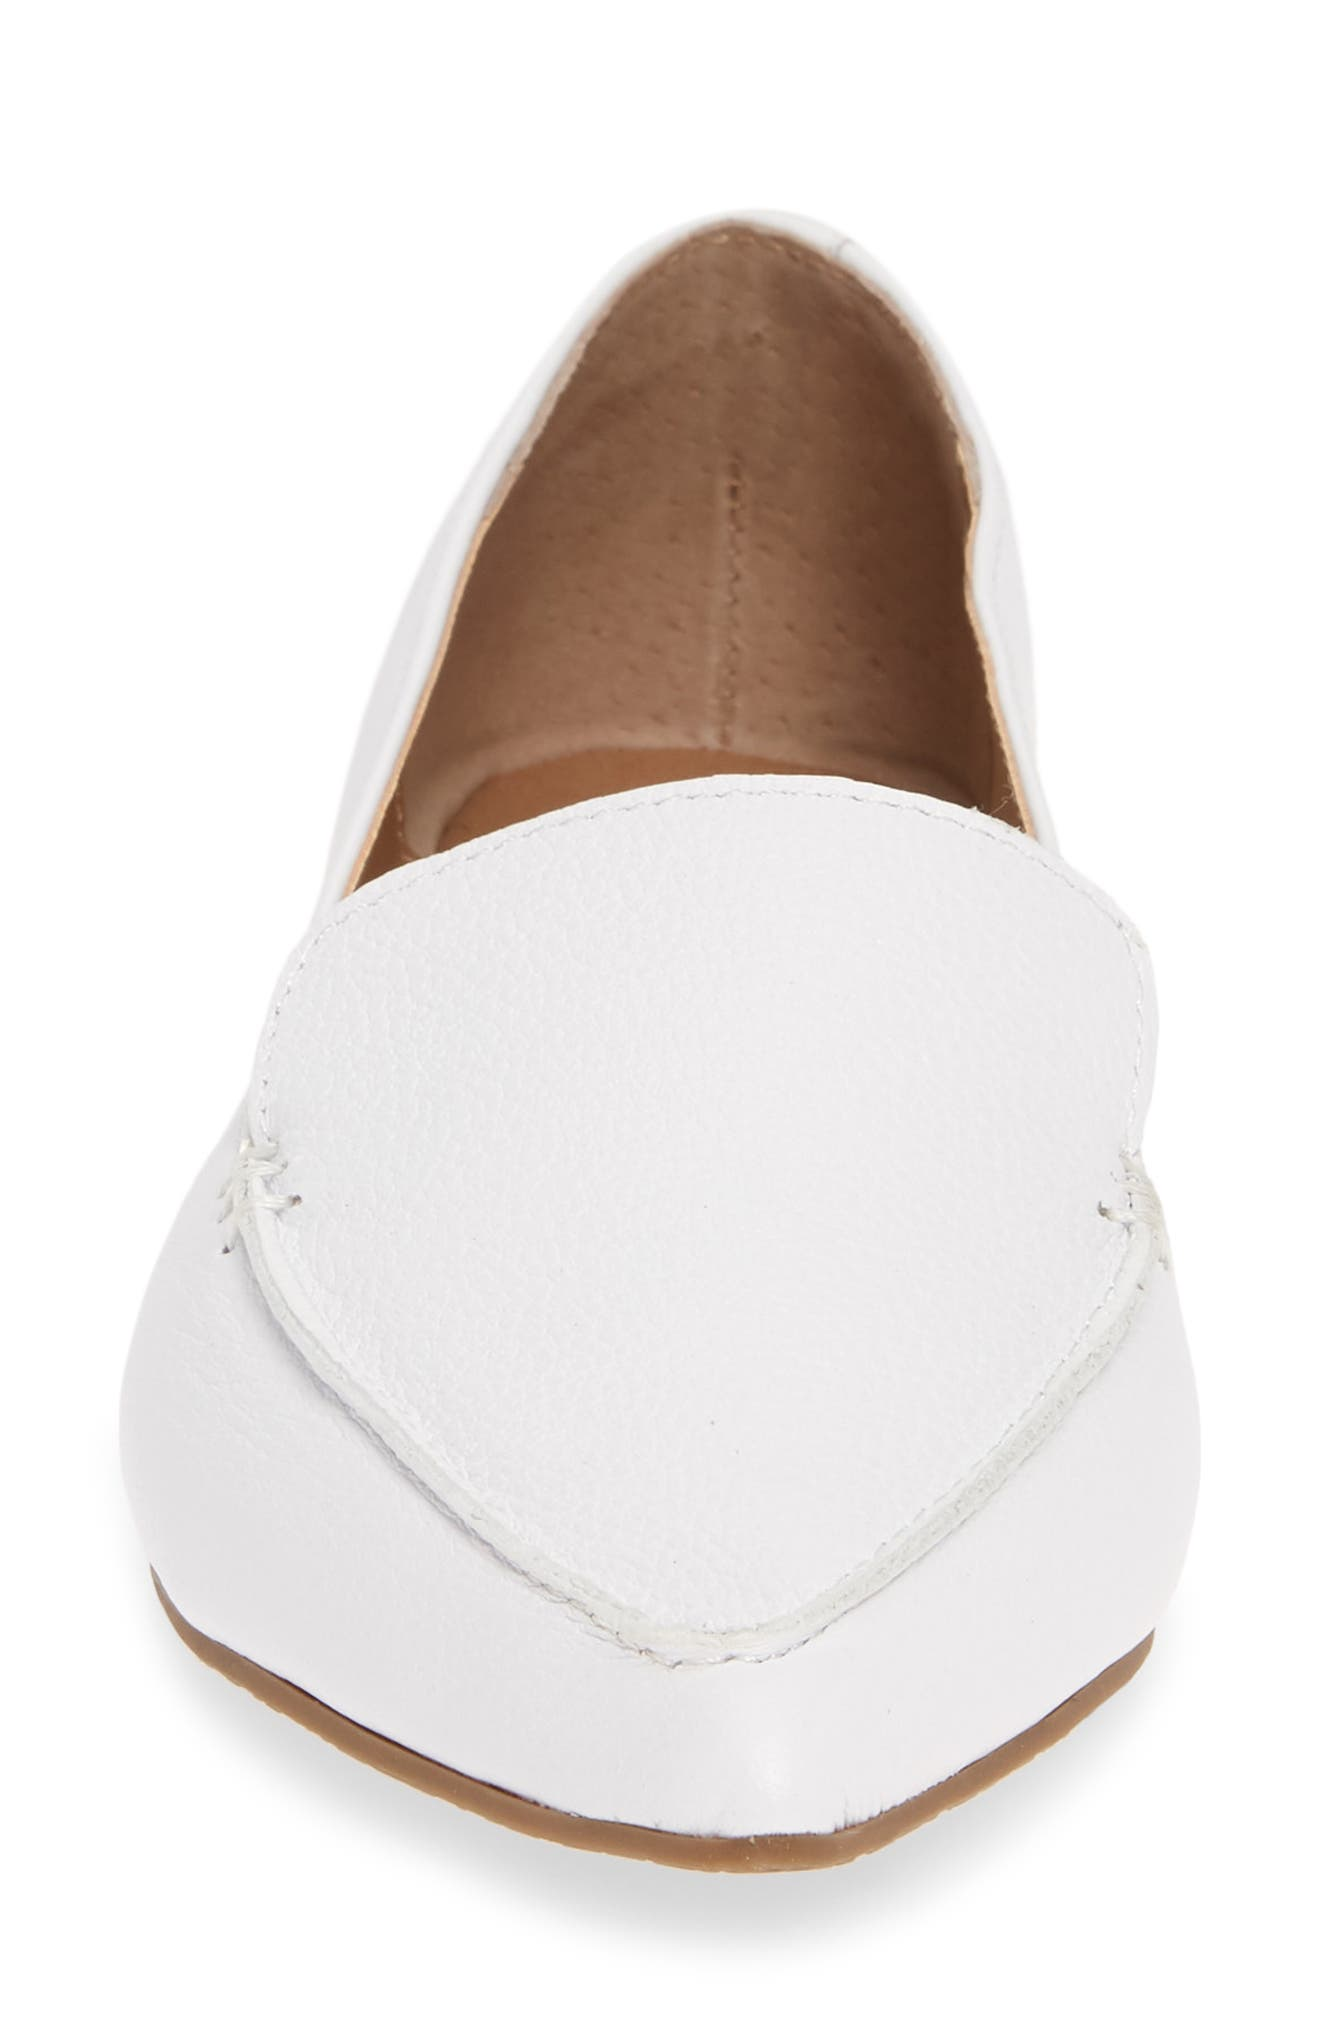 STEVE MADDEN, Feather Loafer Flat, Alternate thumbnail 4, color, WHITE LEATHER